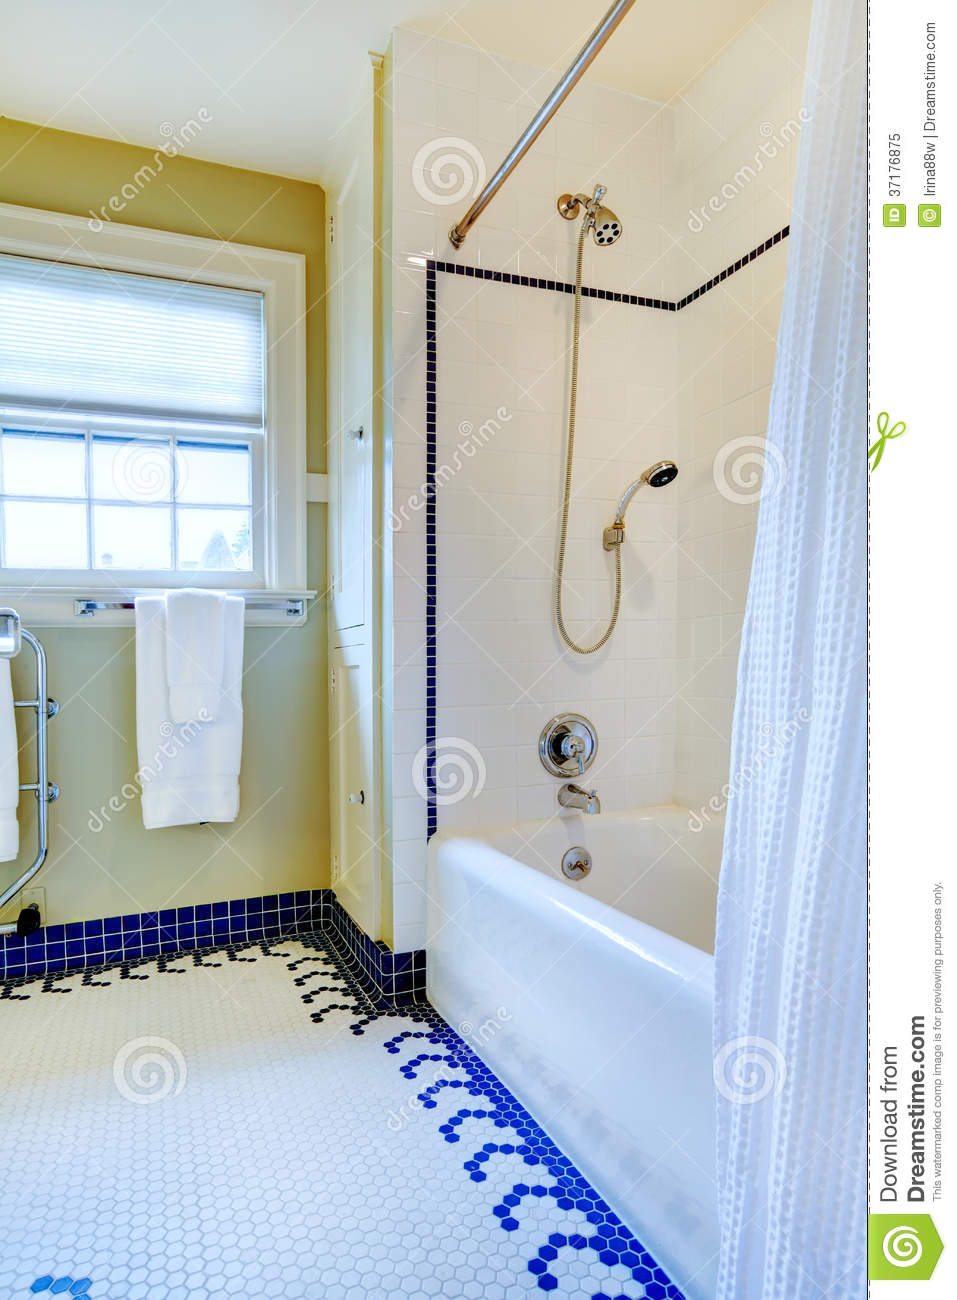 Baños Amarillos Con Azul:Blue and Yellow Bathroom Floor Tile